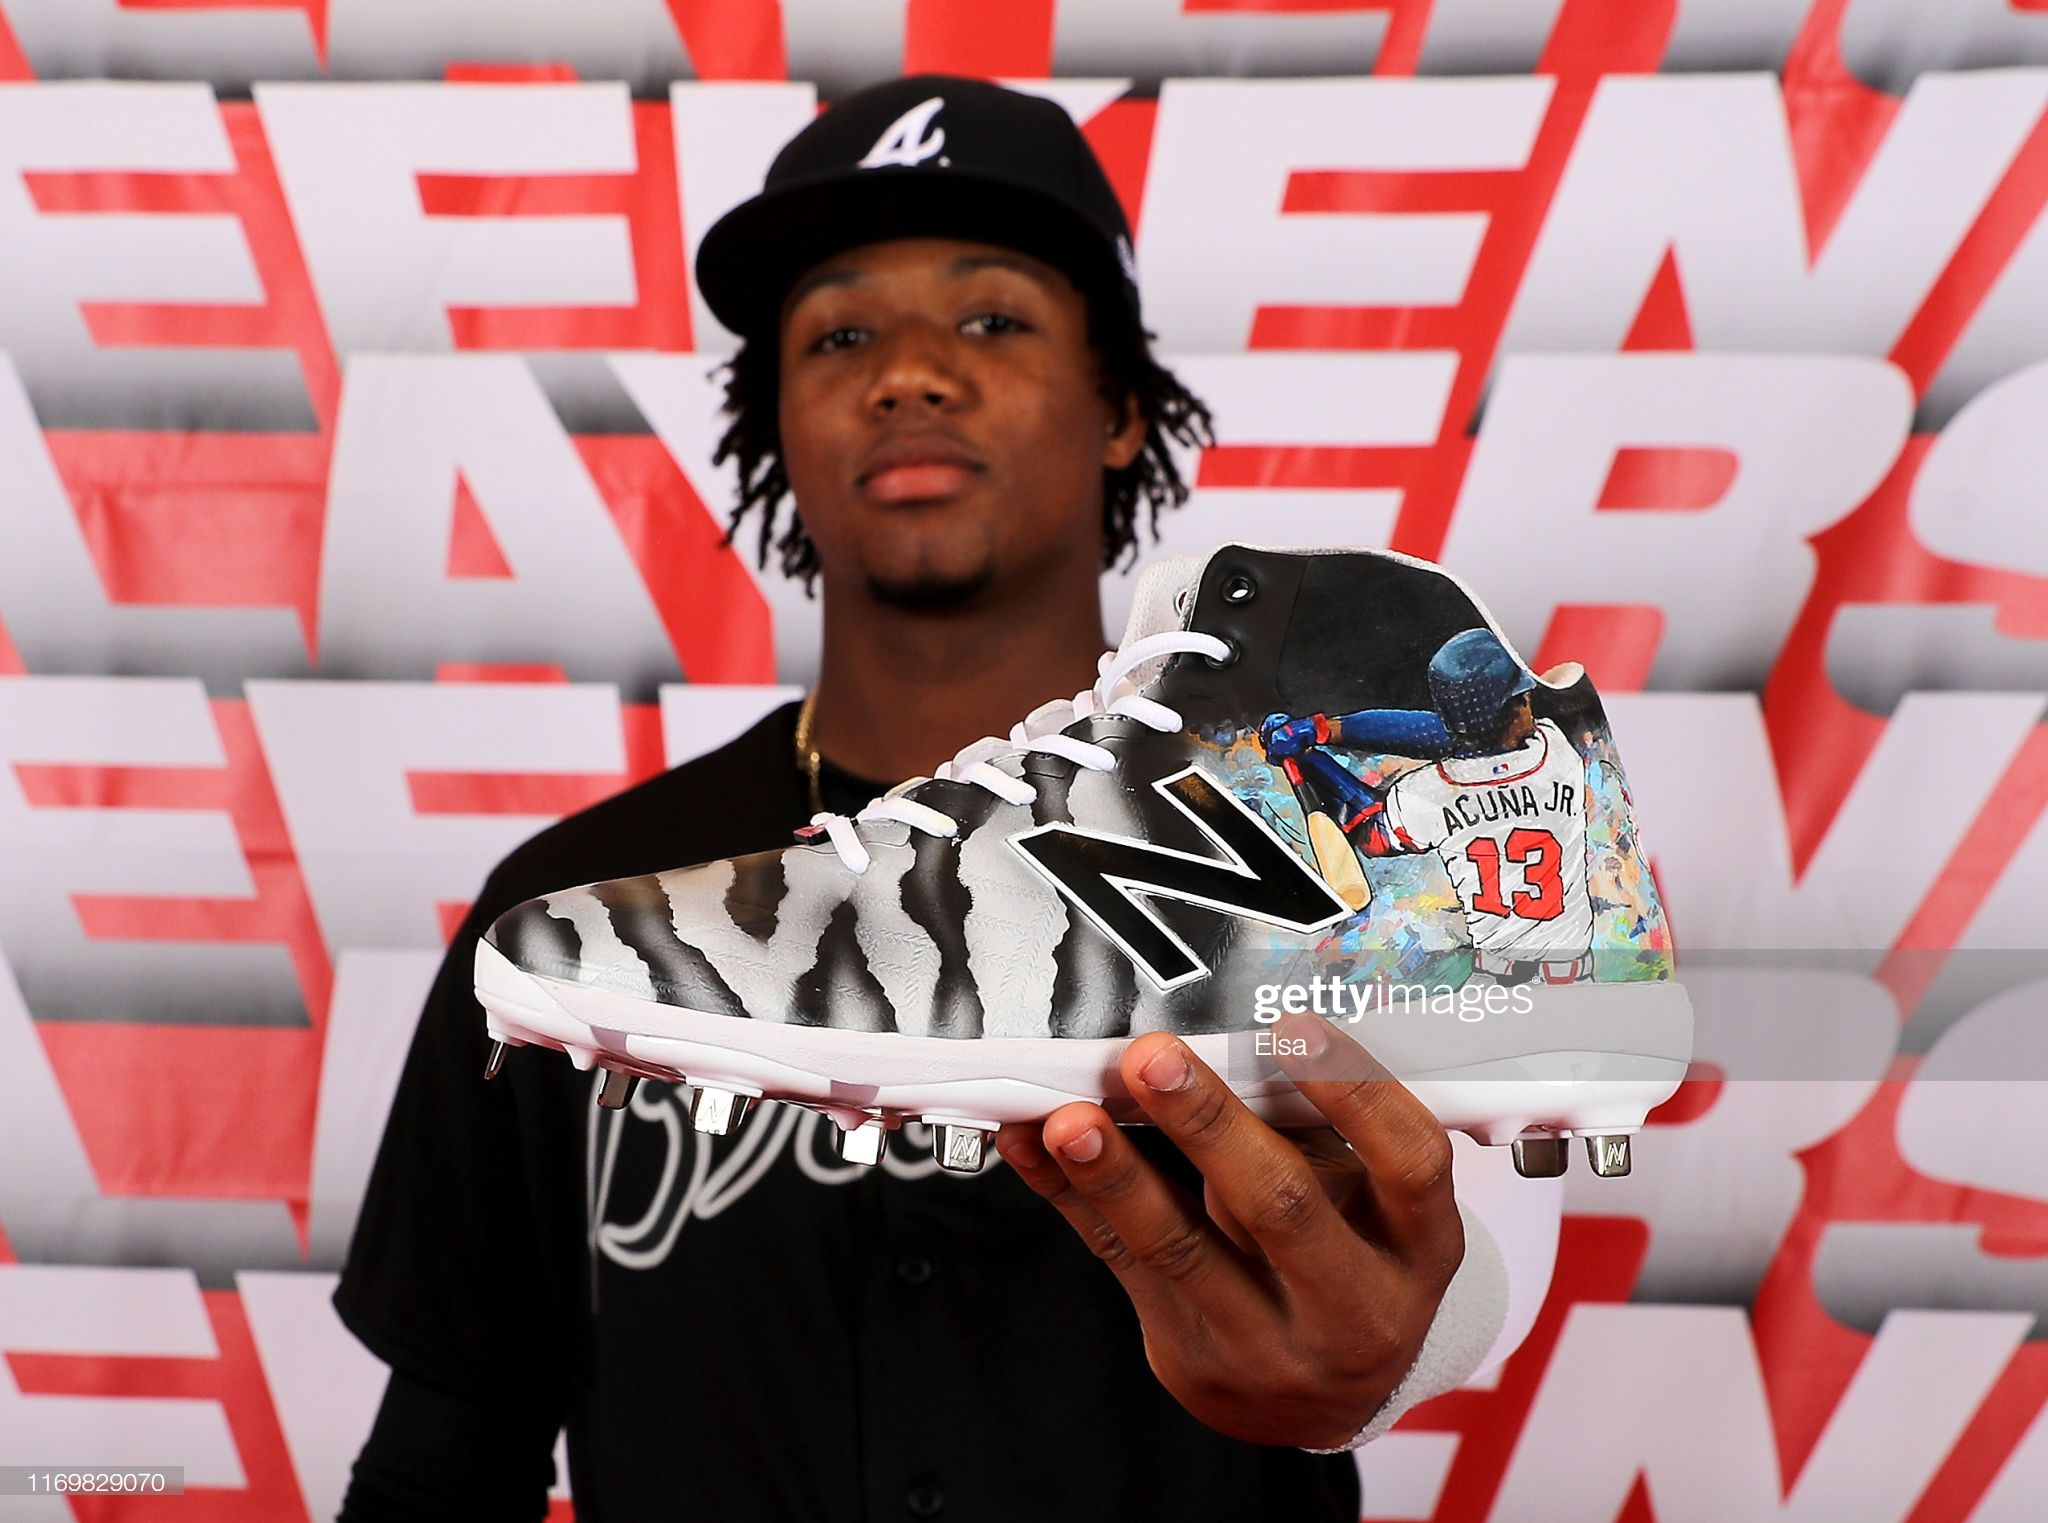 Ronald Acuna Jr 13 Of The Atlanta Braves Shows Of His Custom Cleats Atlanta Braves Braves Atlanta